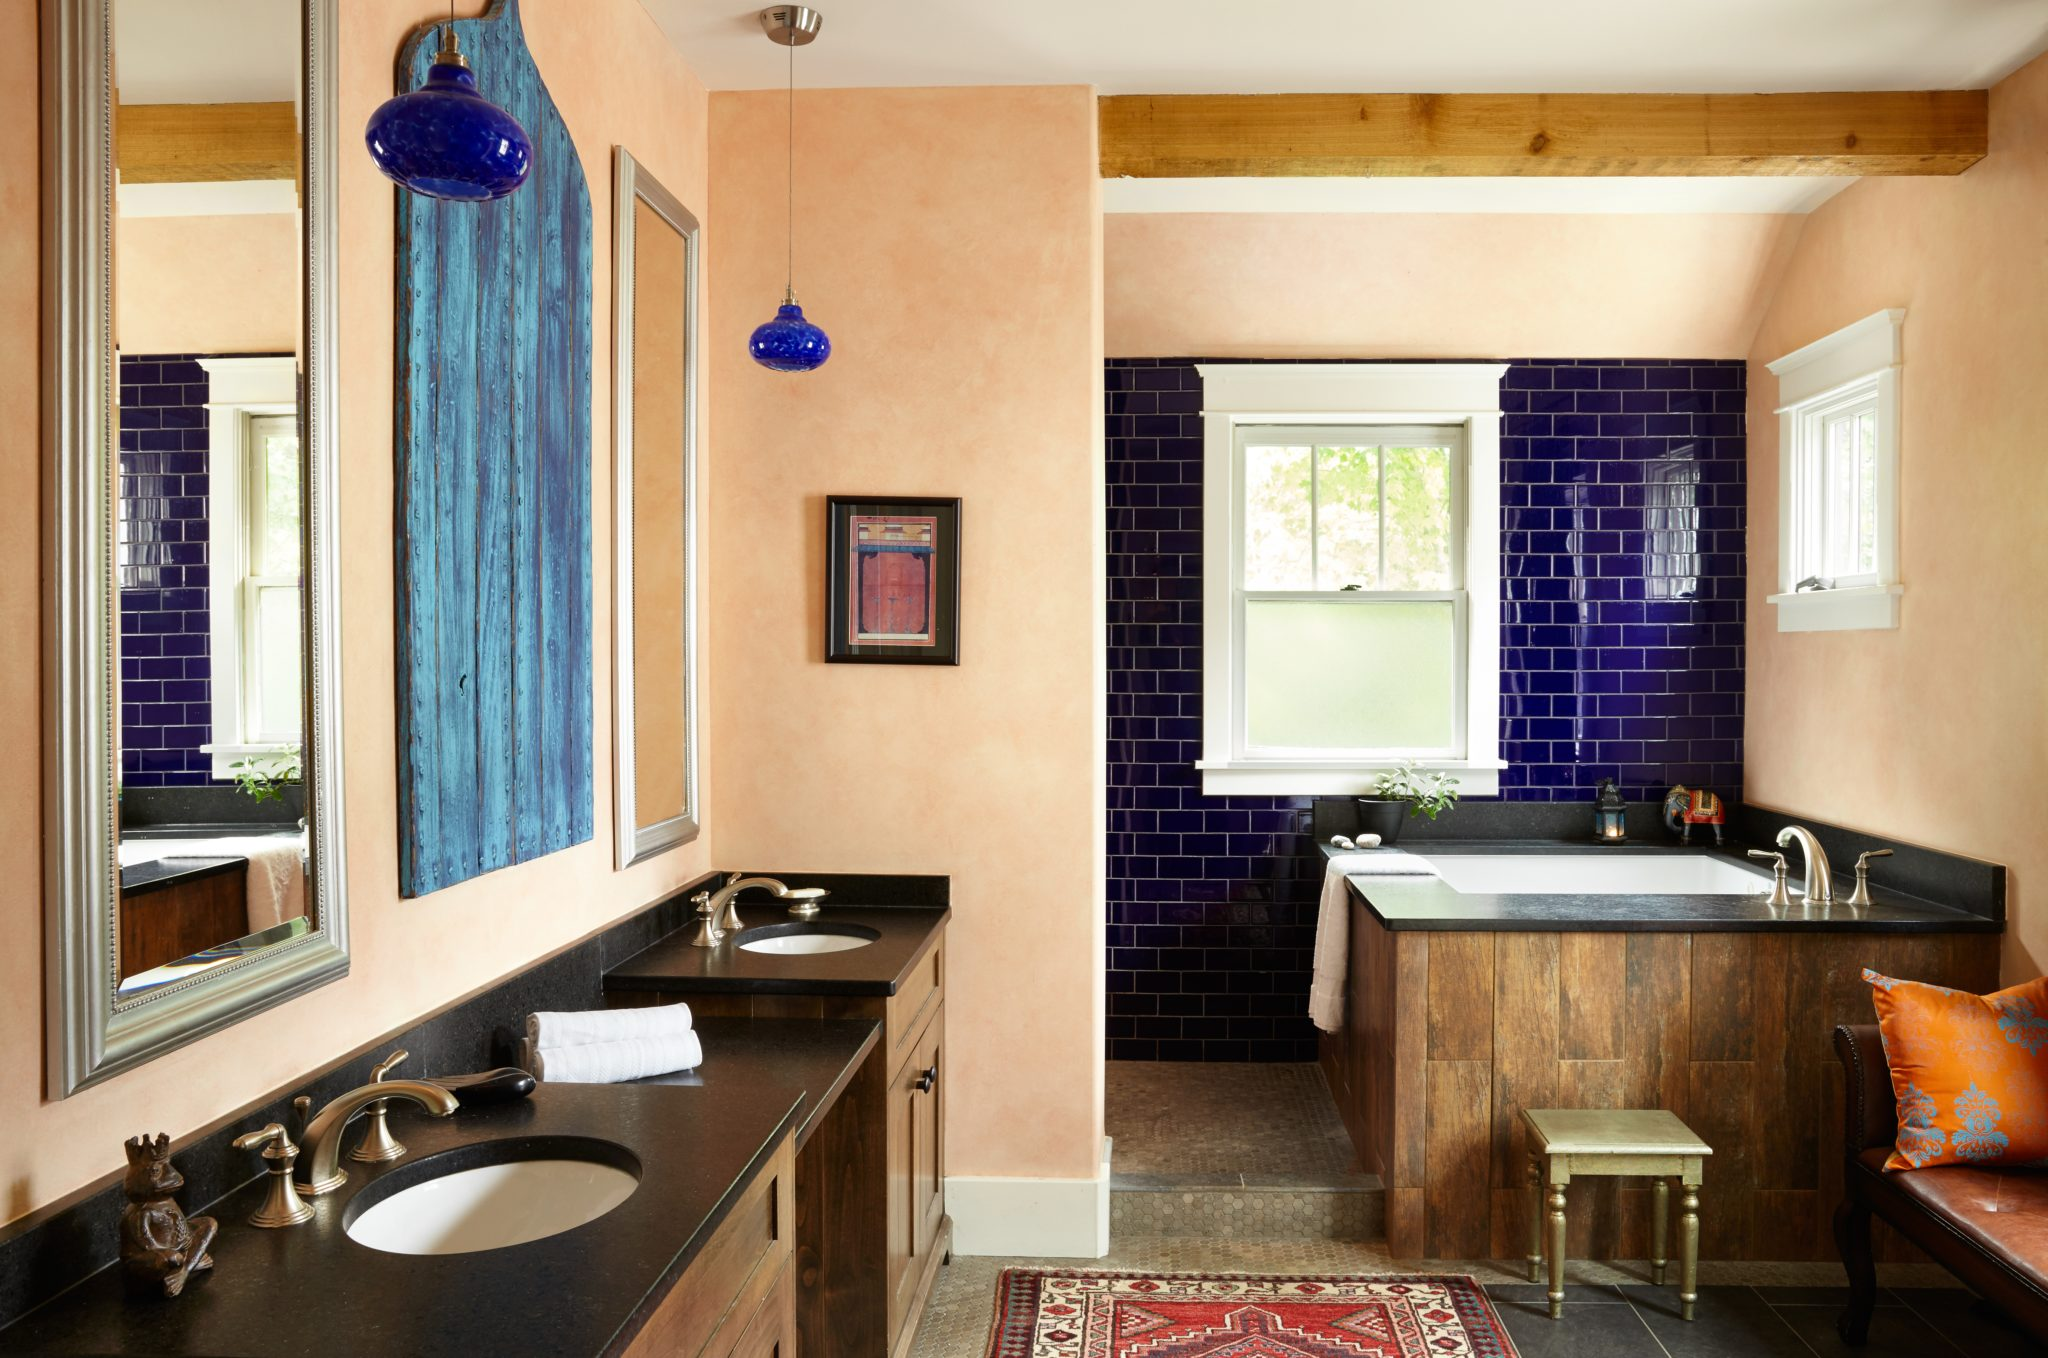 Moroccan-style bath with Japanese-style soaker tub. By Marcelle Guilbeau Interior Design